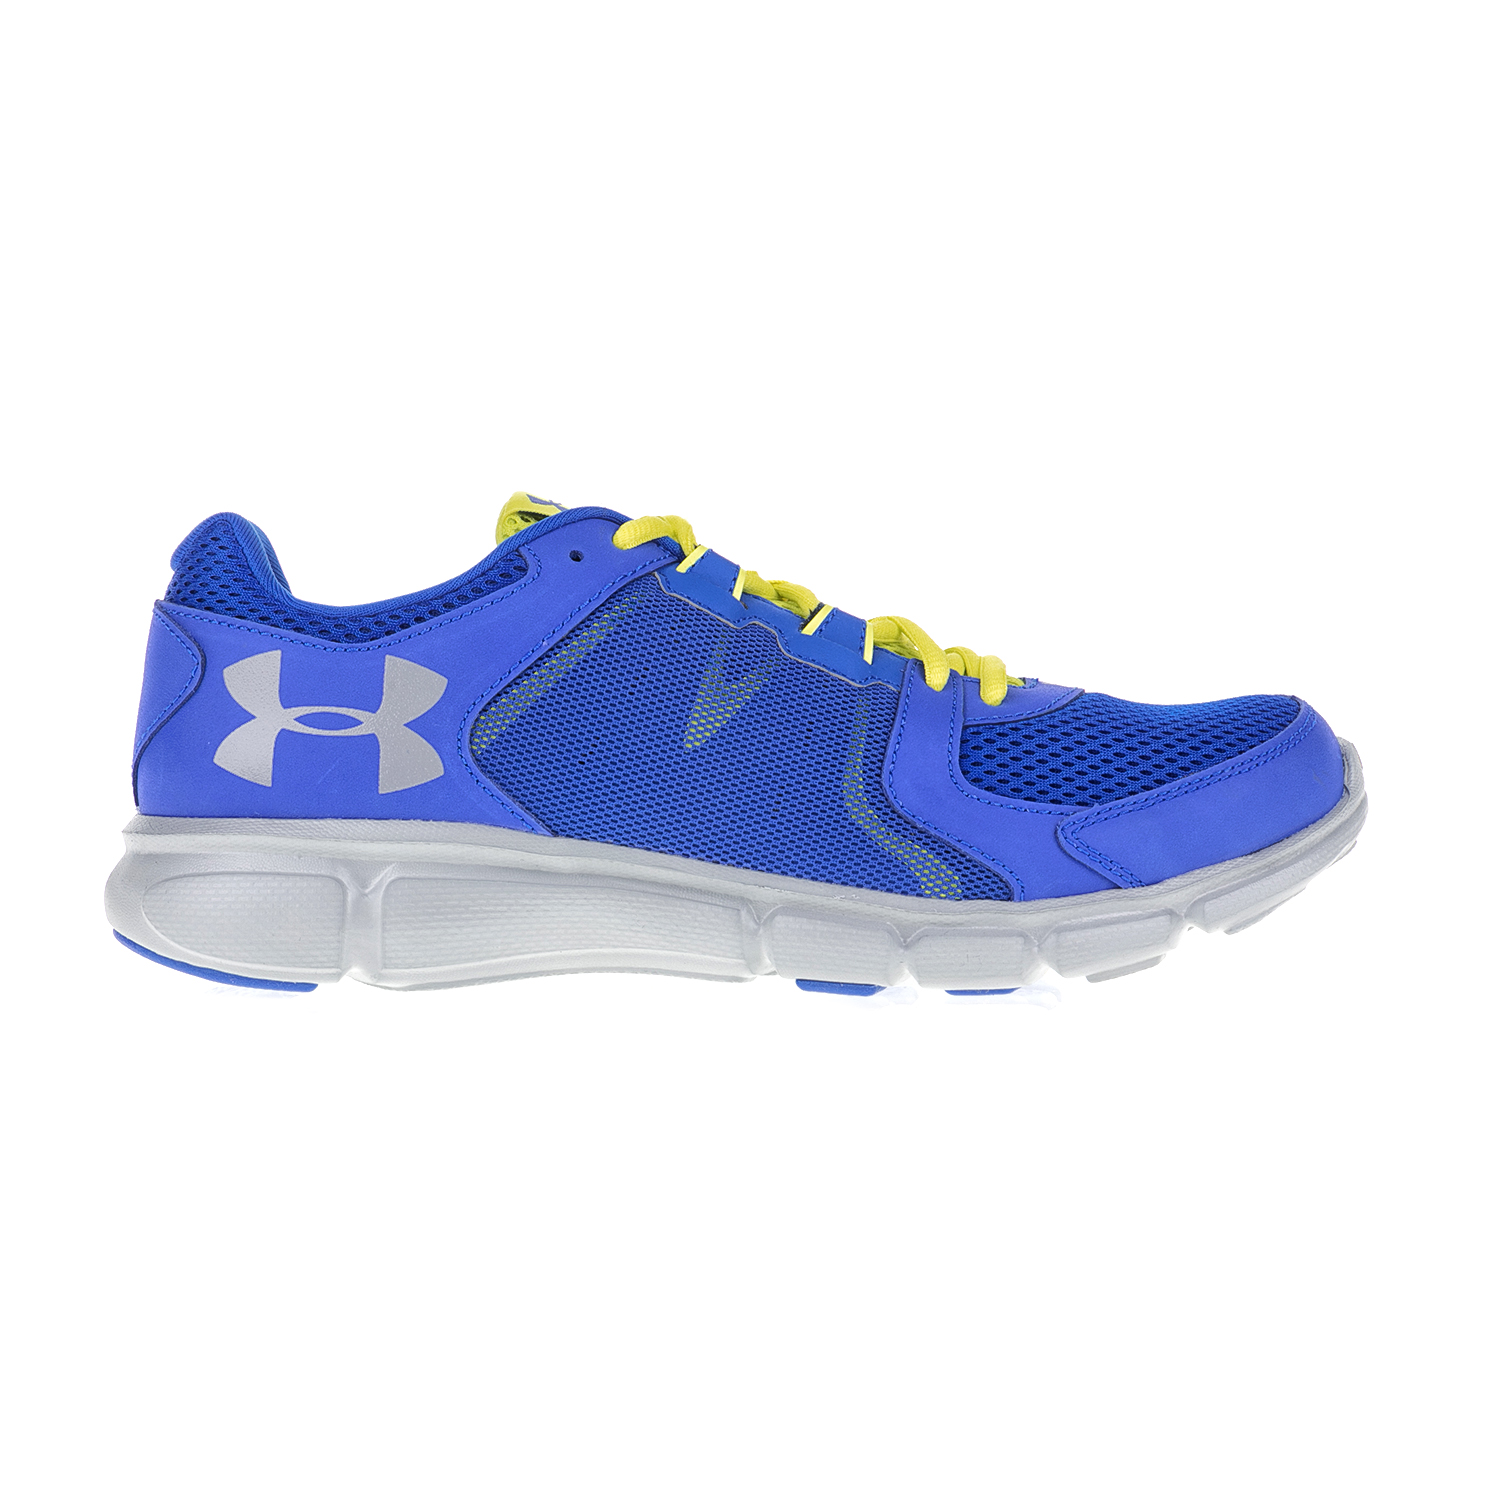 UNDER ARMOUR – Ανδρικά αθλητικά παπούτσια UNDER ARMOUR Thrill 2 μπλε-κίτρινα